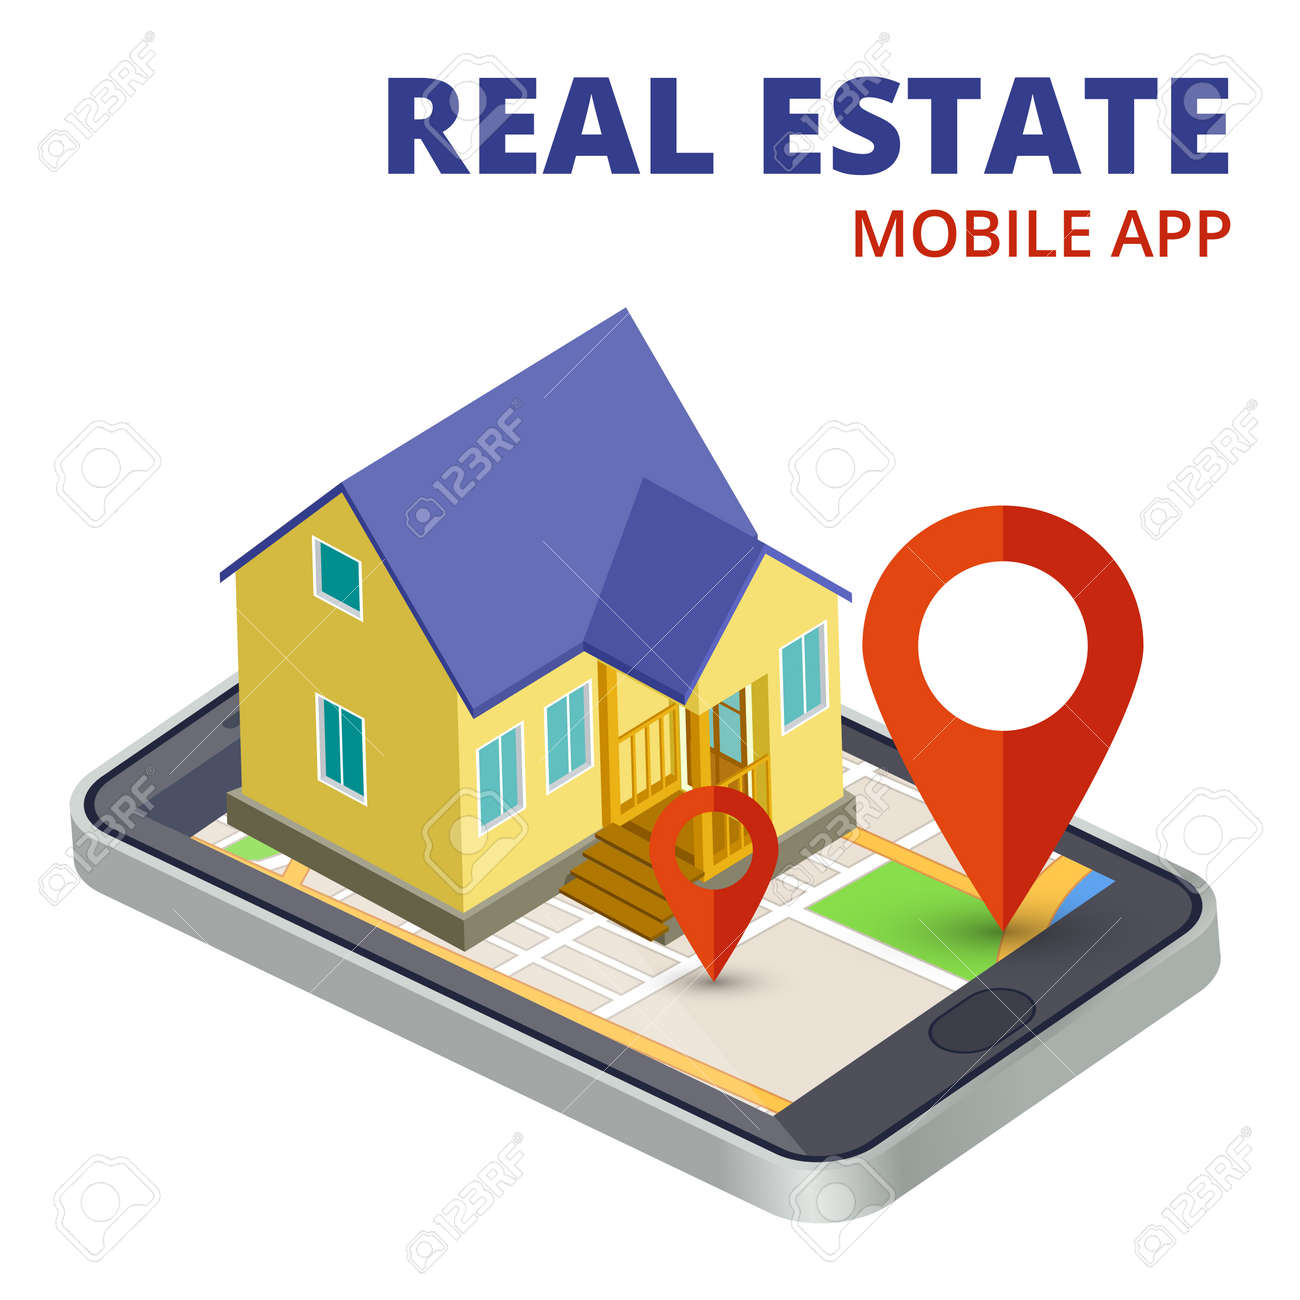 Isometric real estate mobile app with phone and 3d house vector. Illustration of real estate mobile app - 168324415